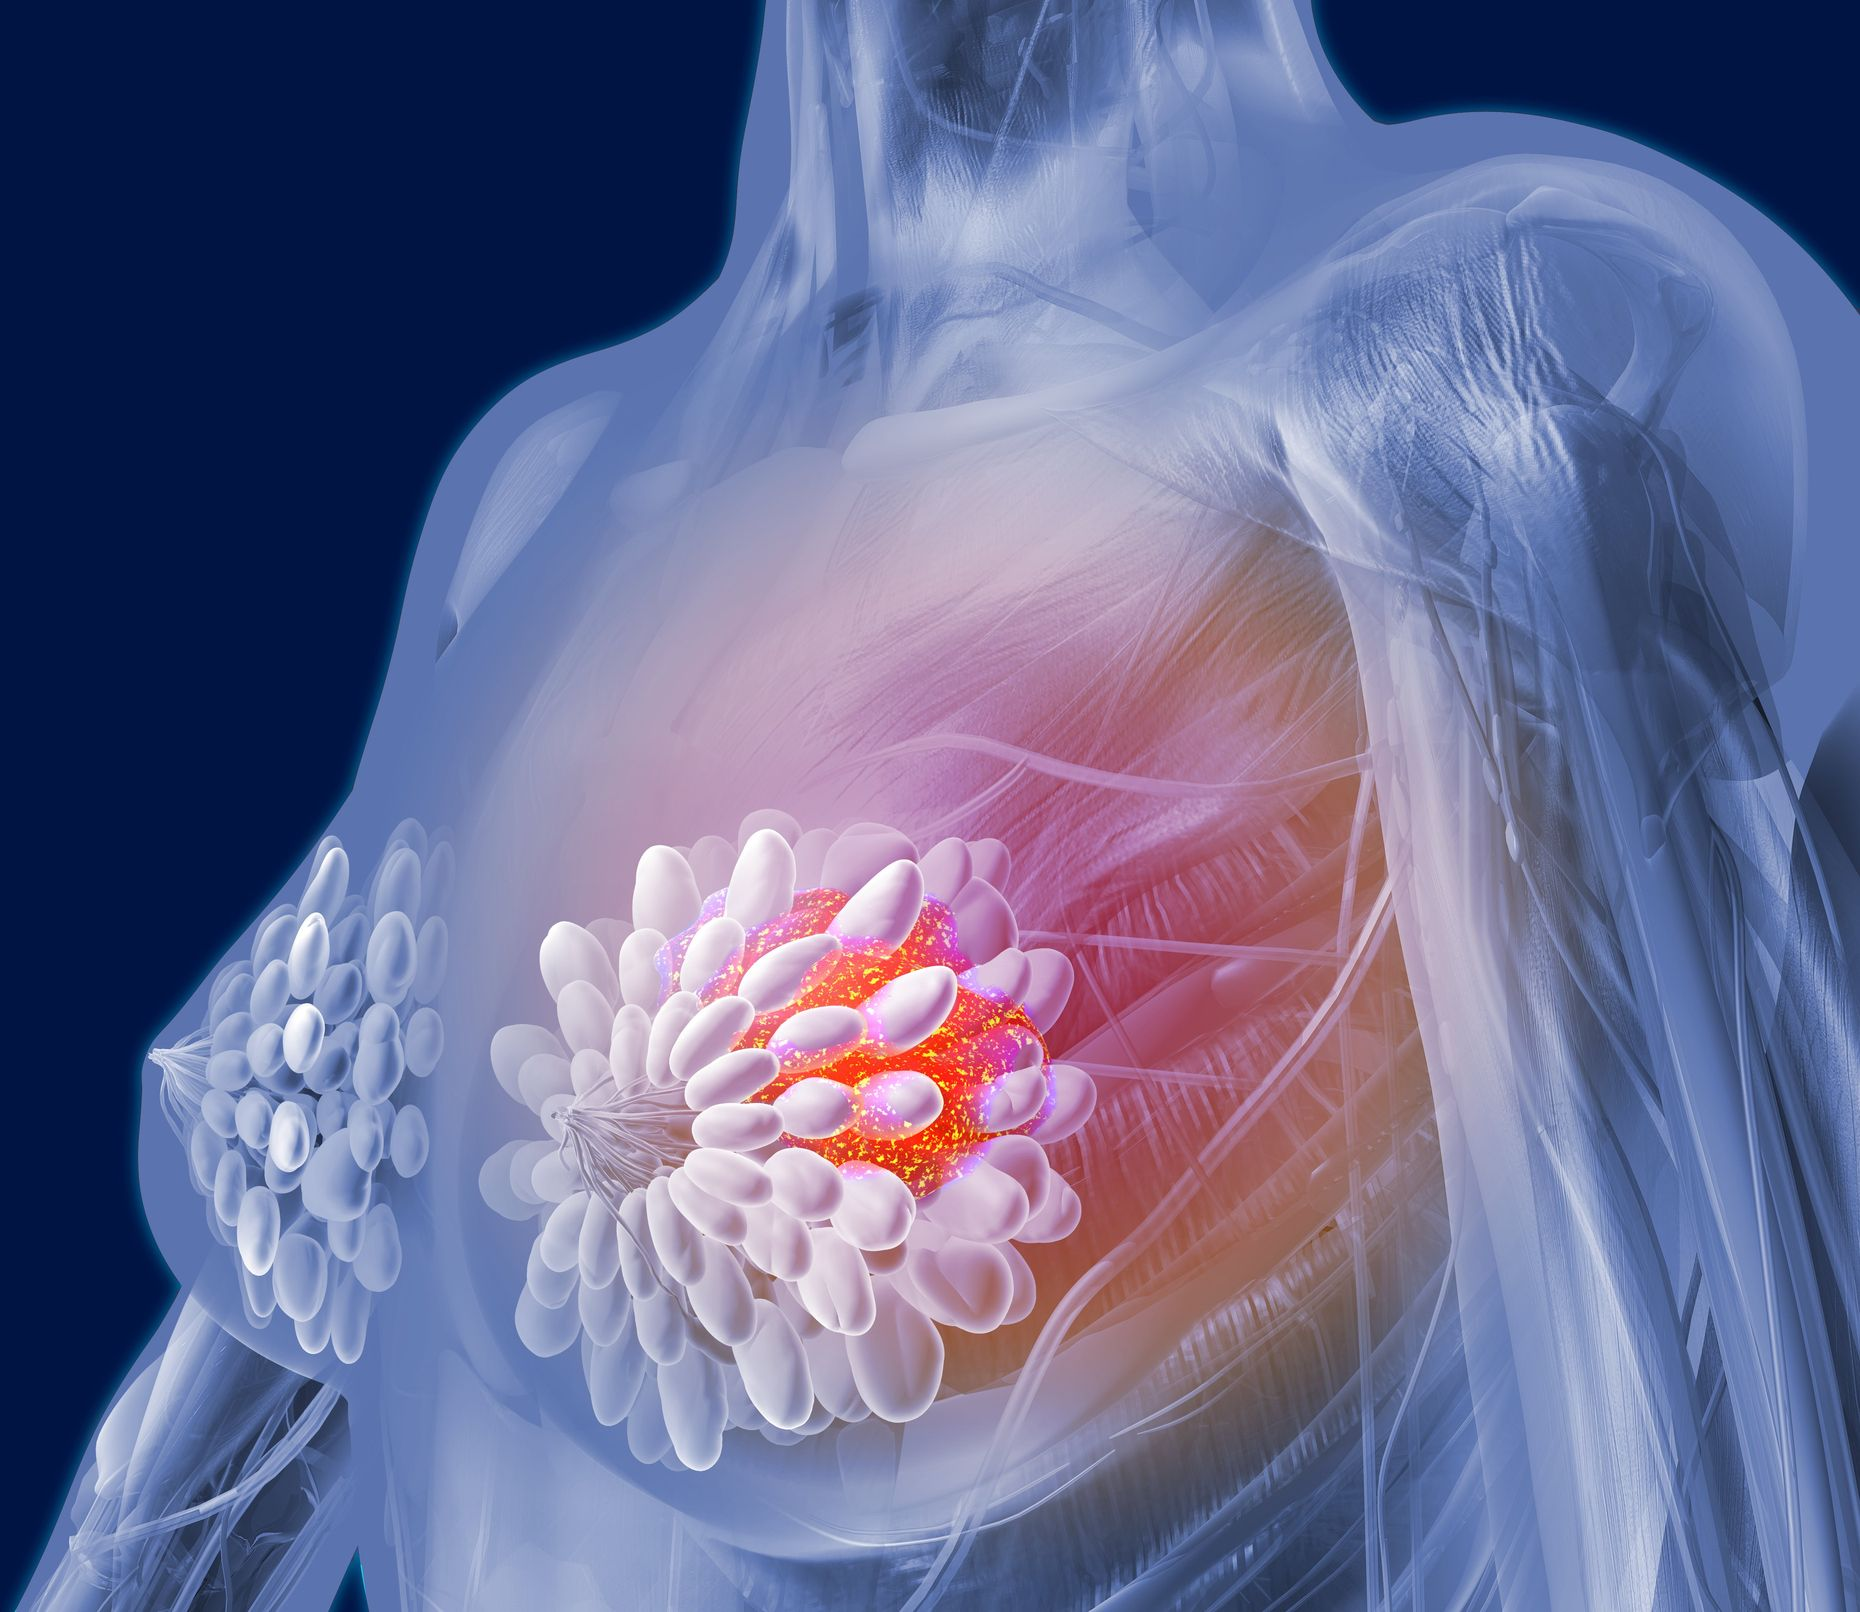 10 Ways to Keep Breast Cancer Out of Your Future